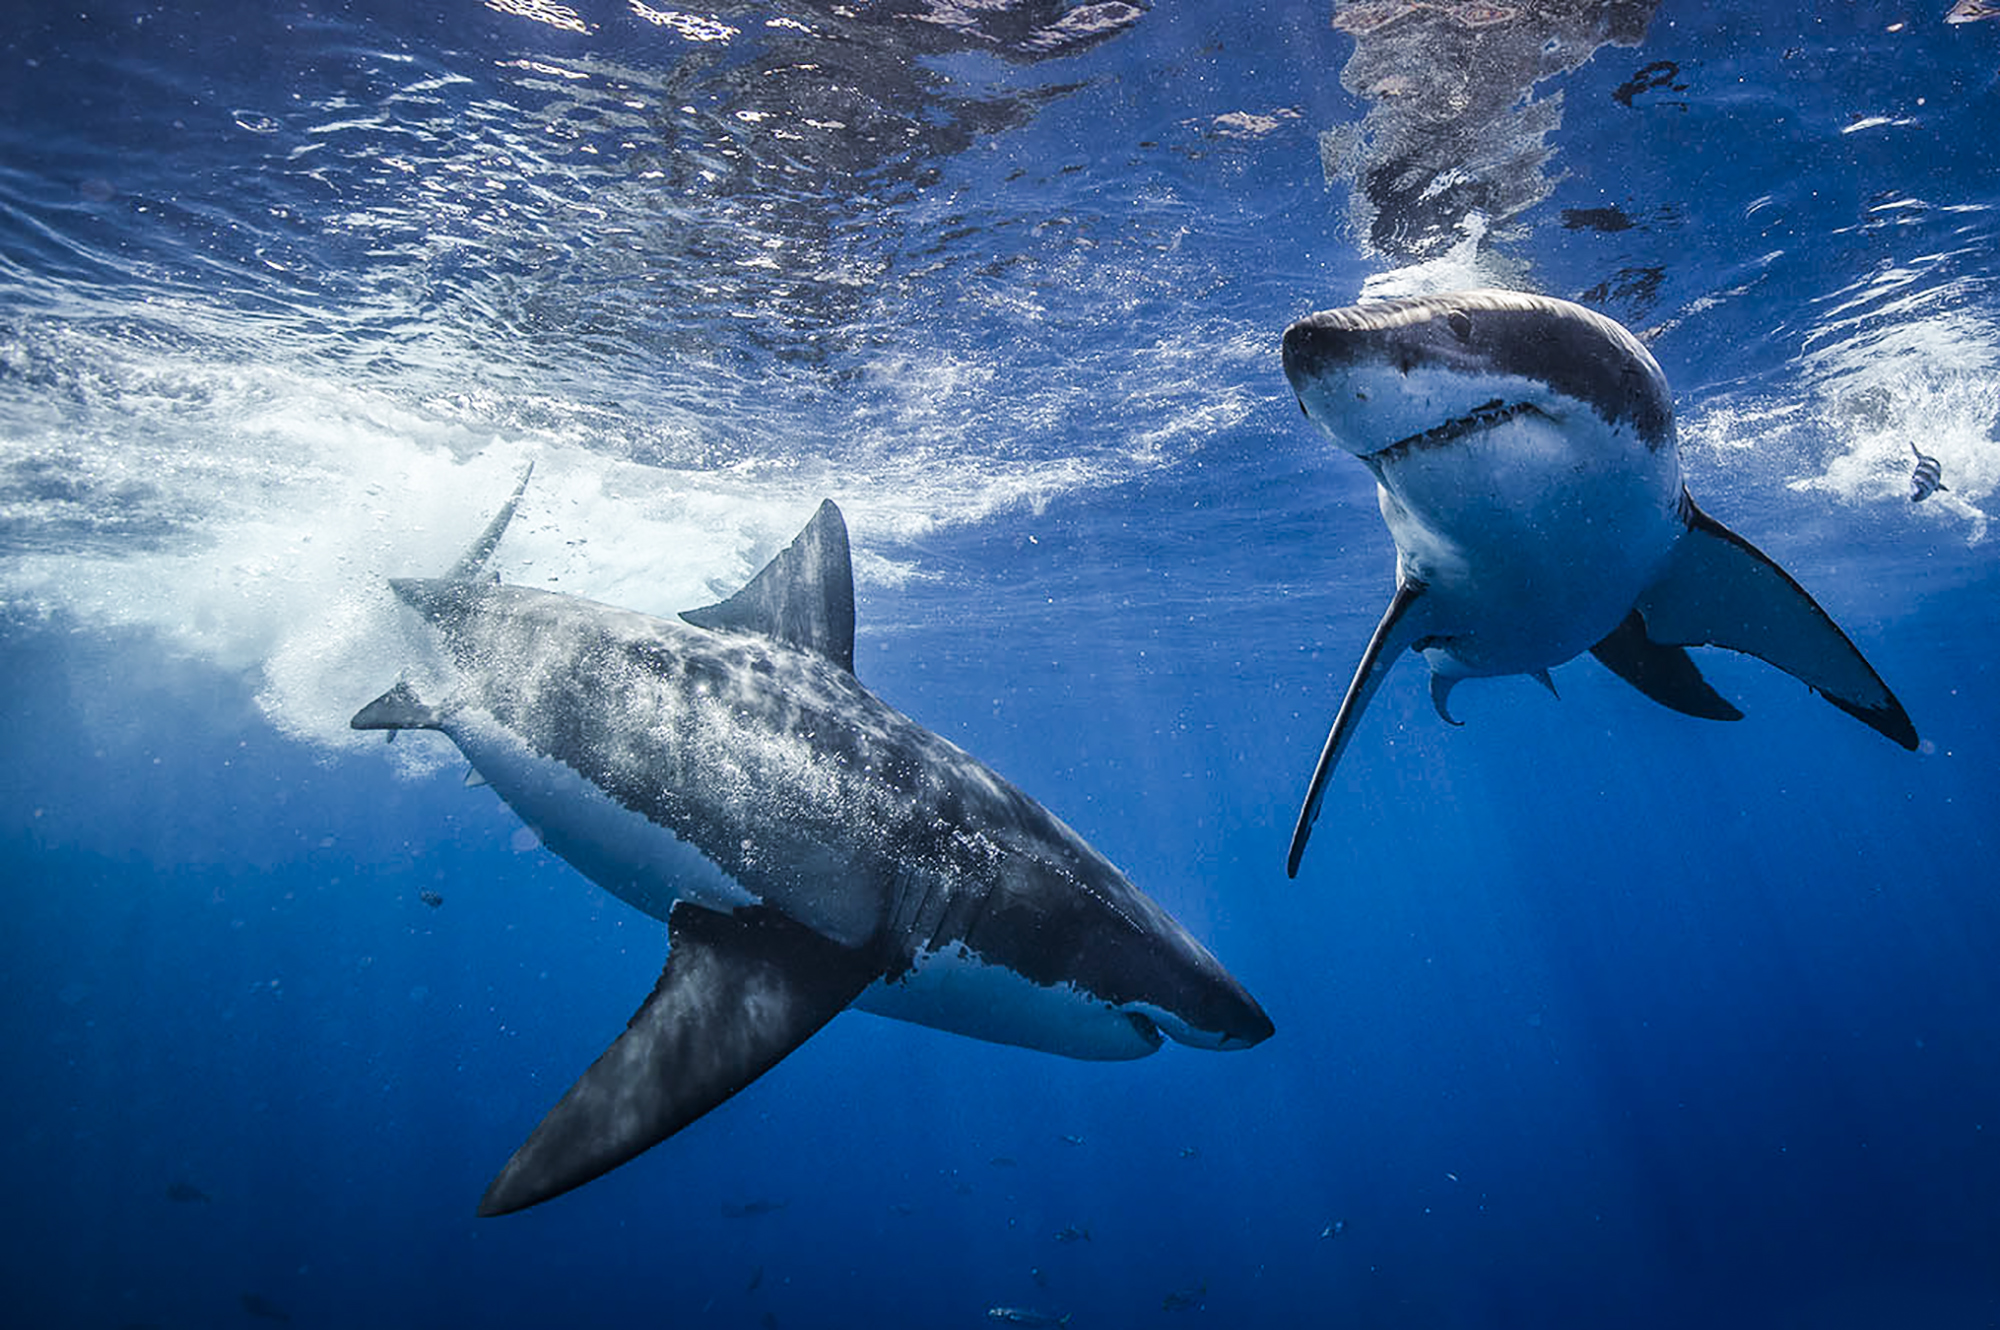 Two great whites, Photo by Scott Davis